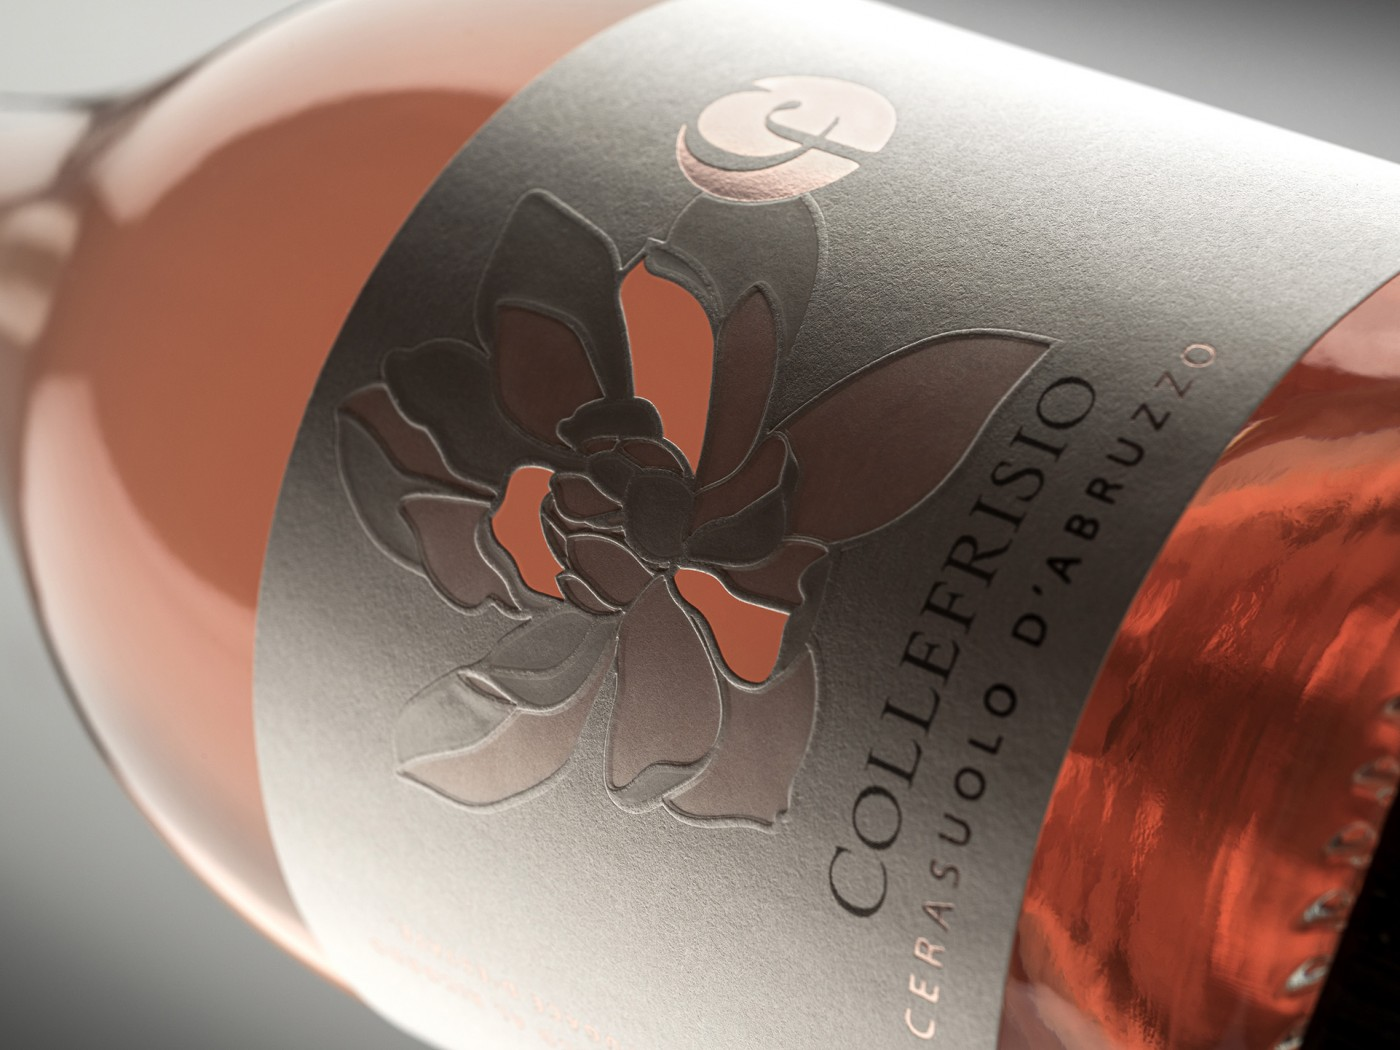 collefrisio-cerasuolo-abruzzo-2020-awards-packaging-spaziodipaolo-label-wine-italy-rose-winedesign-vinitaly-4